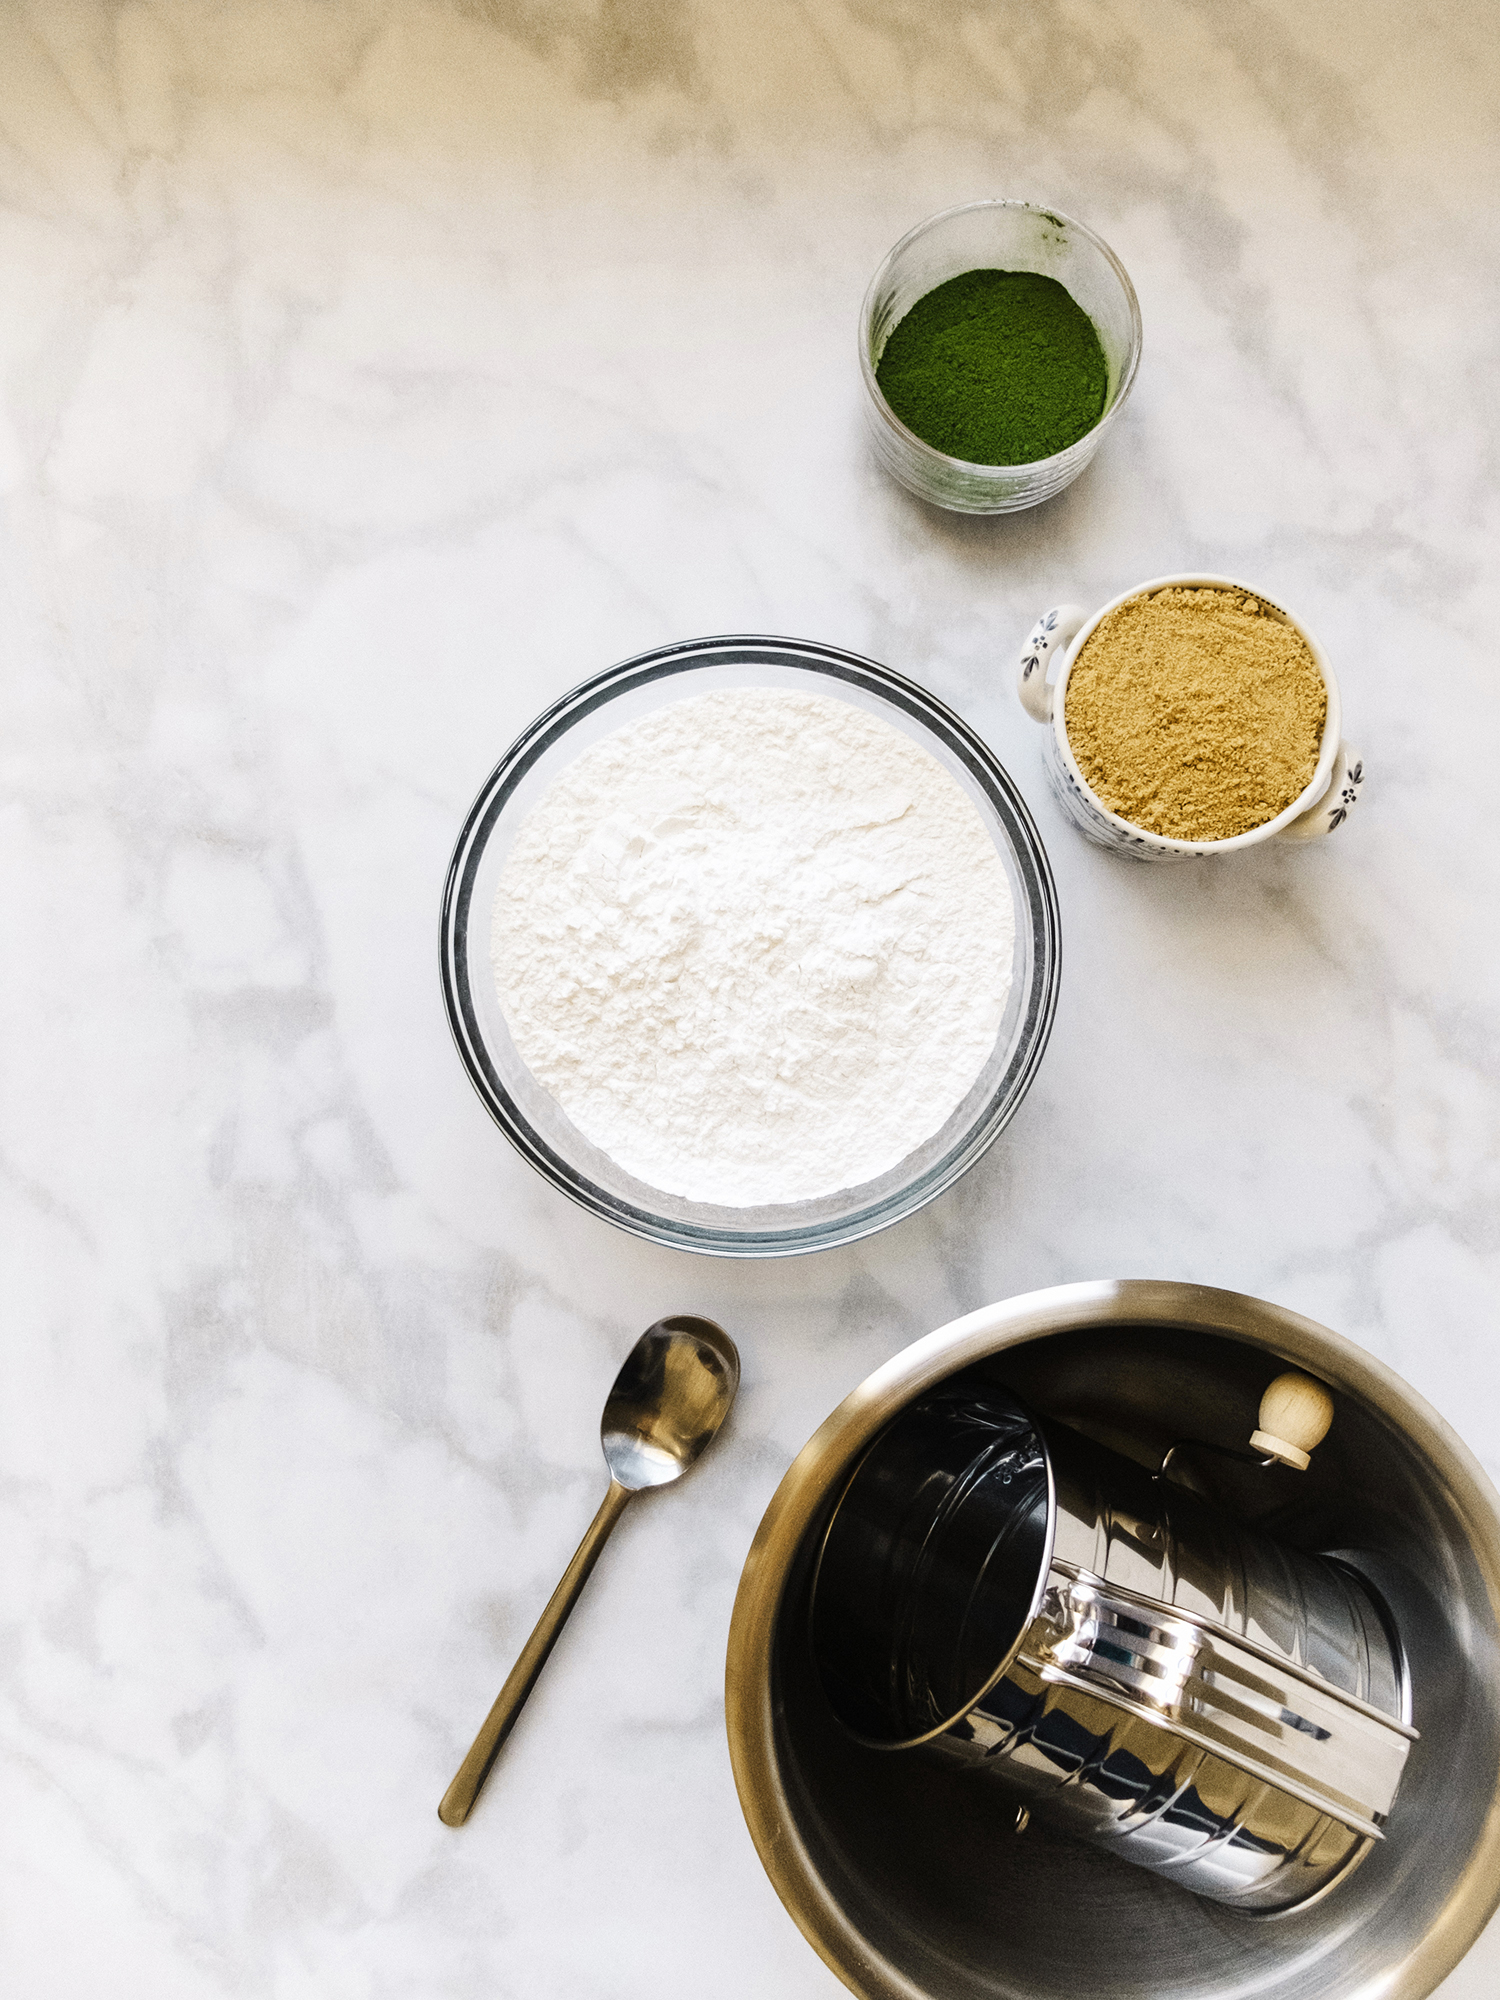 Dry ingredients: Glutinous rice flour, matcha, sugar, and sea salt.